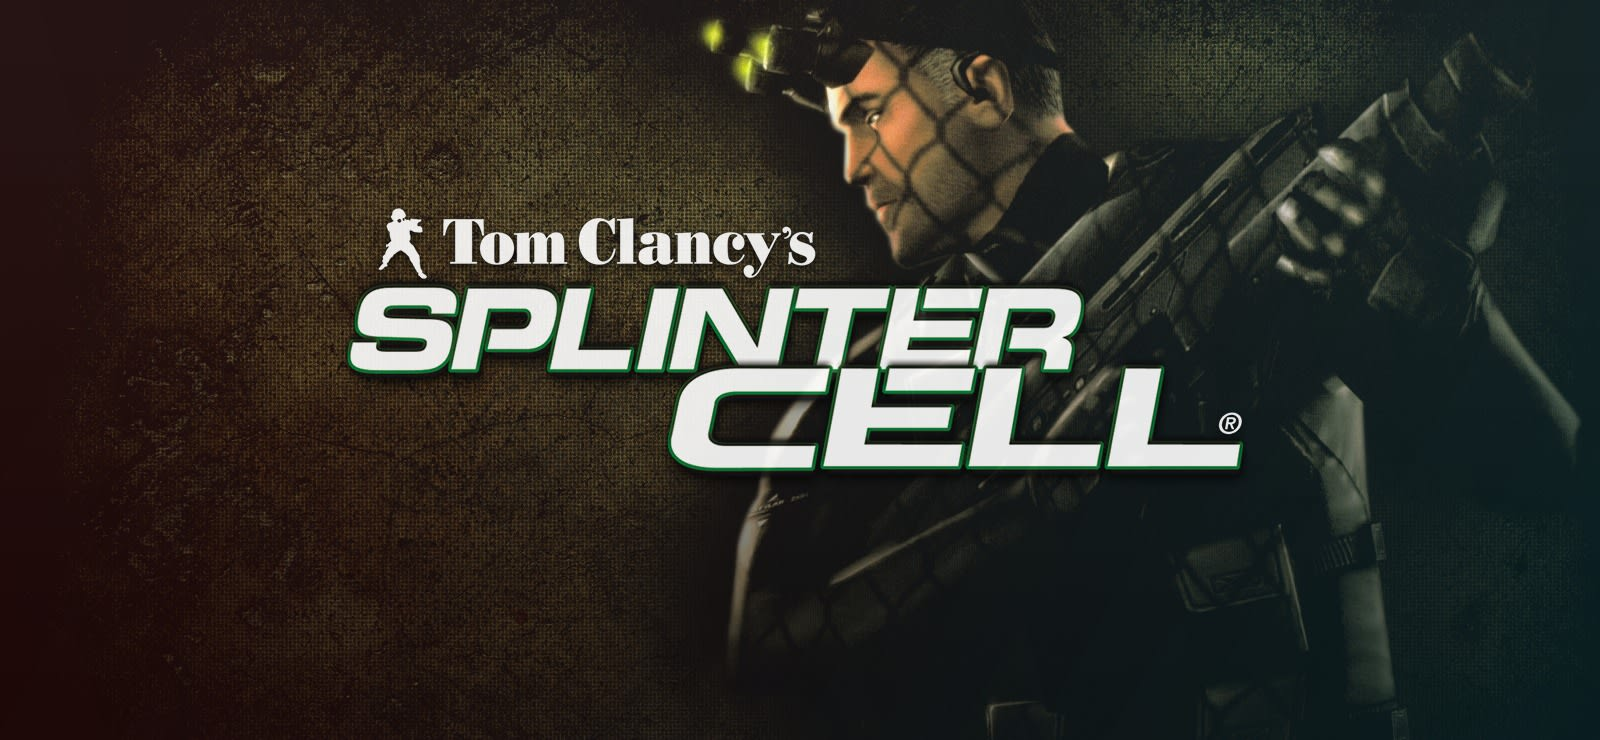 Tom Clancy'S Splinter Cell varies-with-device